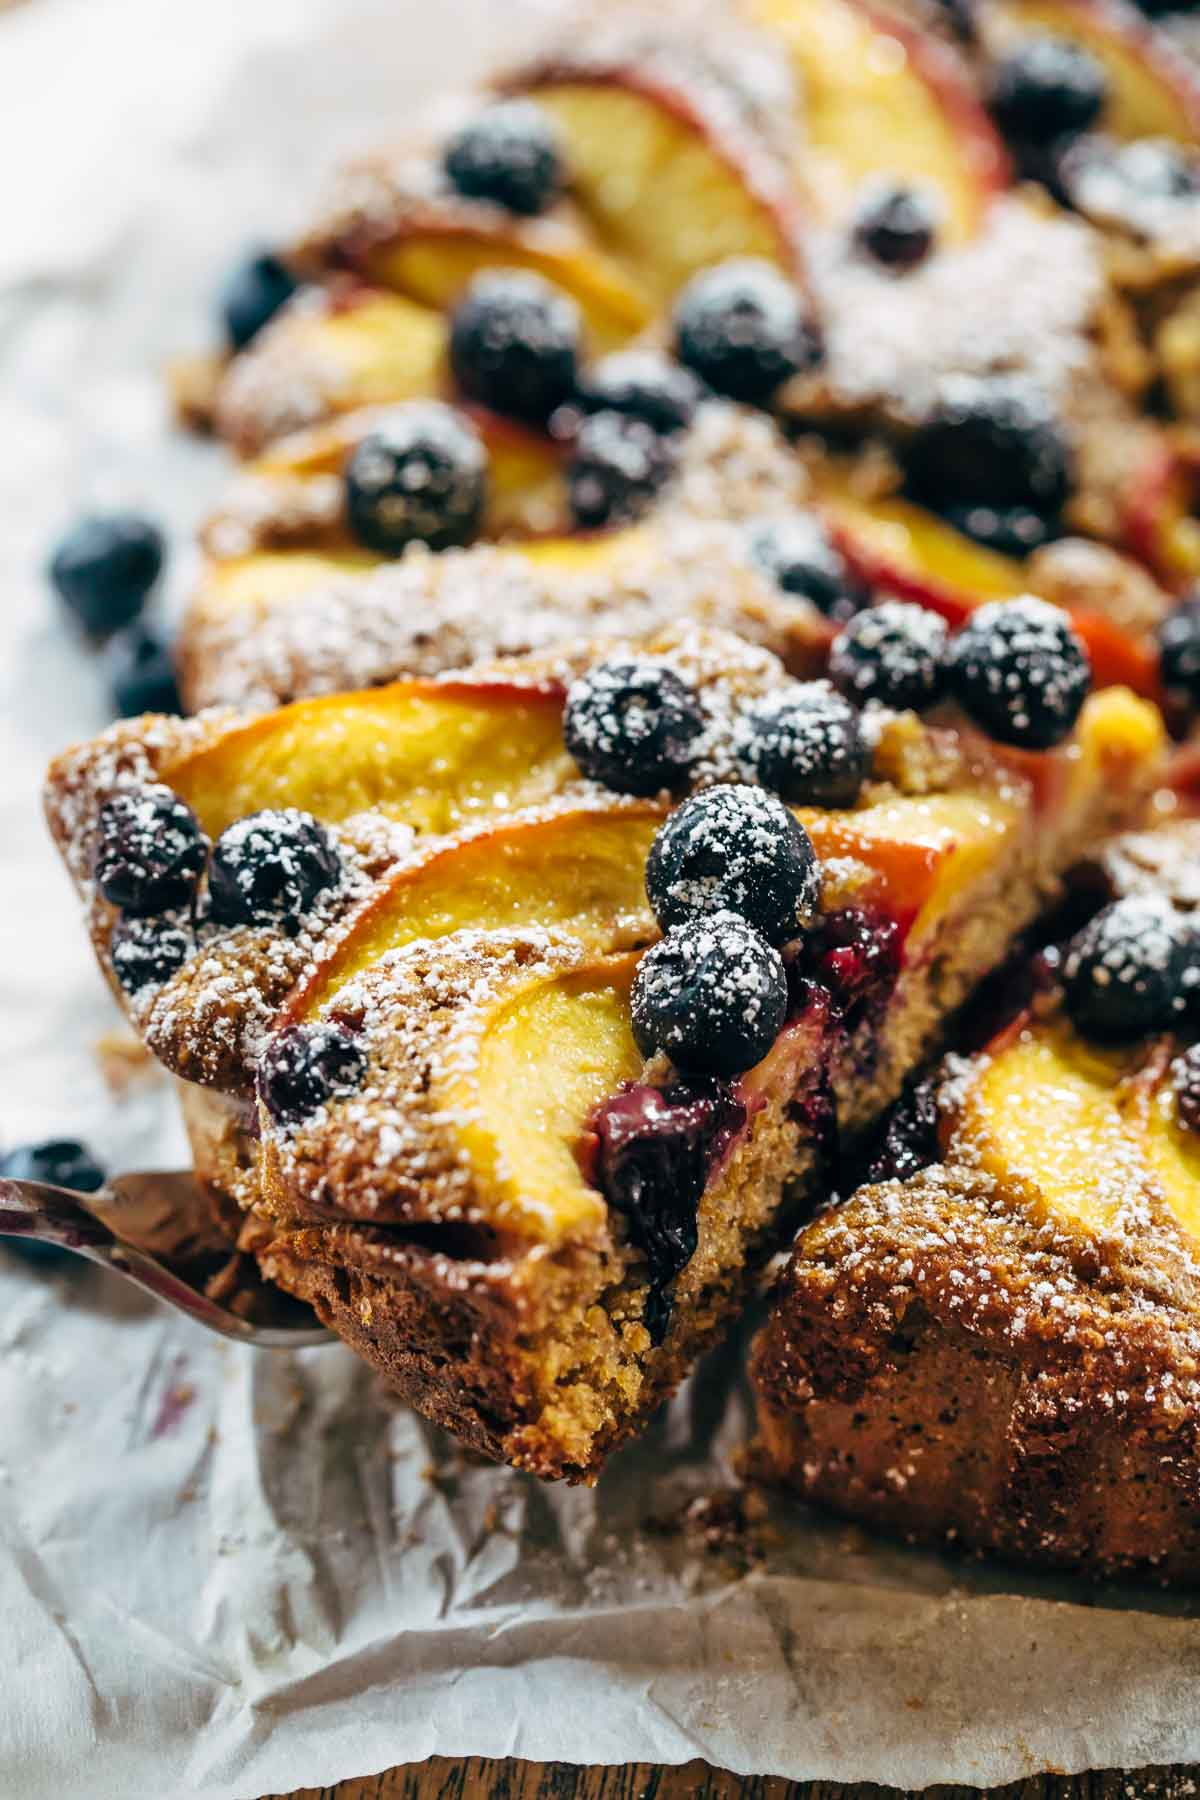 Blueberry Peach Cake recipe uses simple ingredients, whole wheat, no refined sugar, and has a STUNNING presentation. YUM! | pinchofyum.com